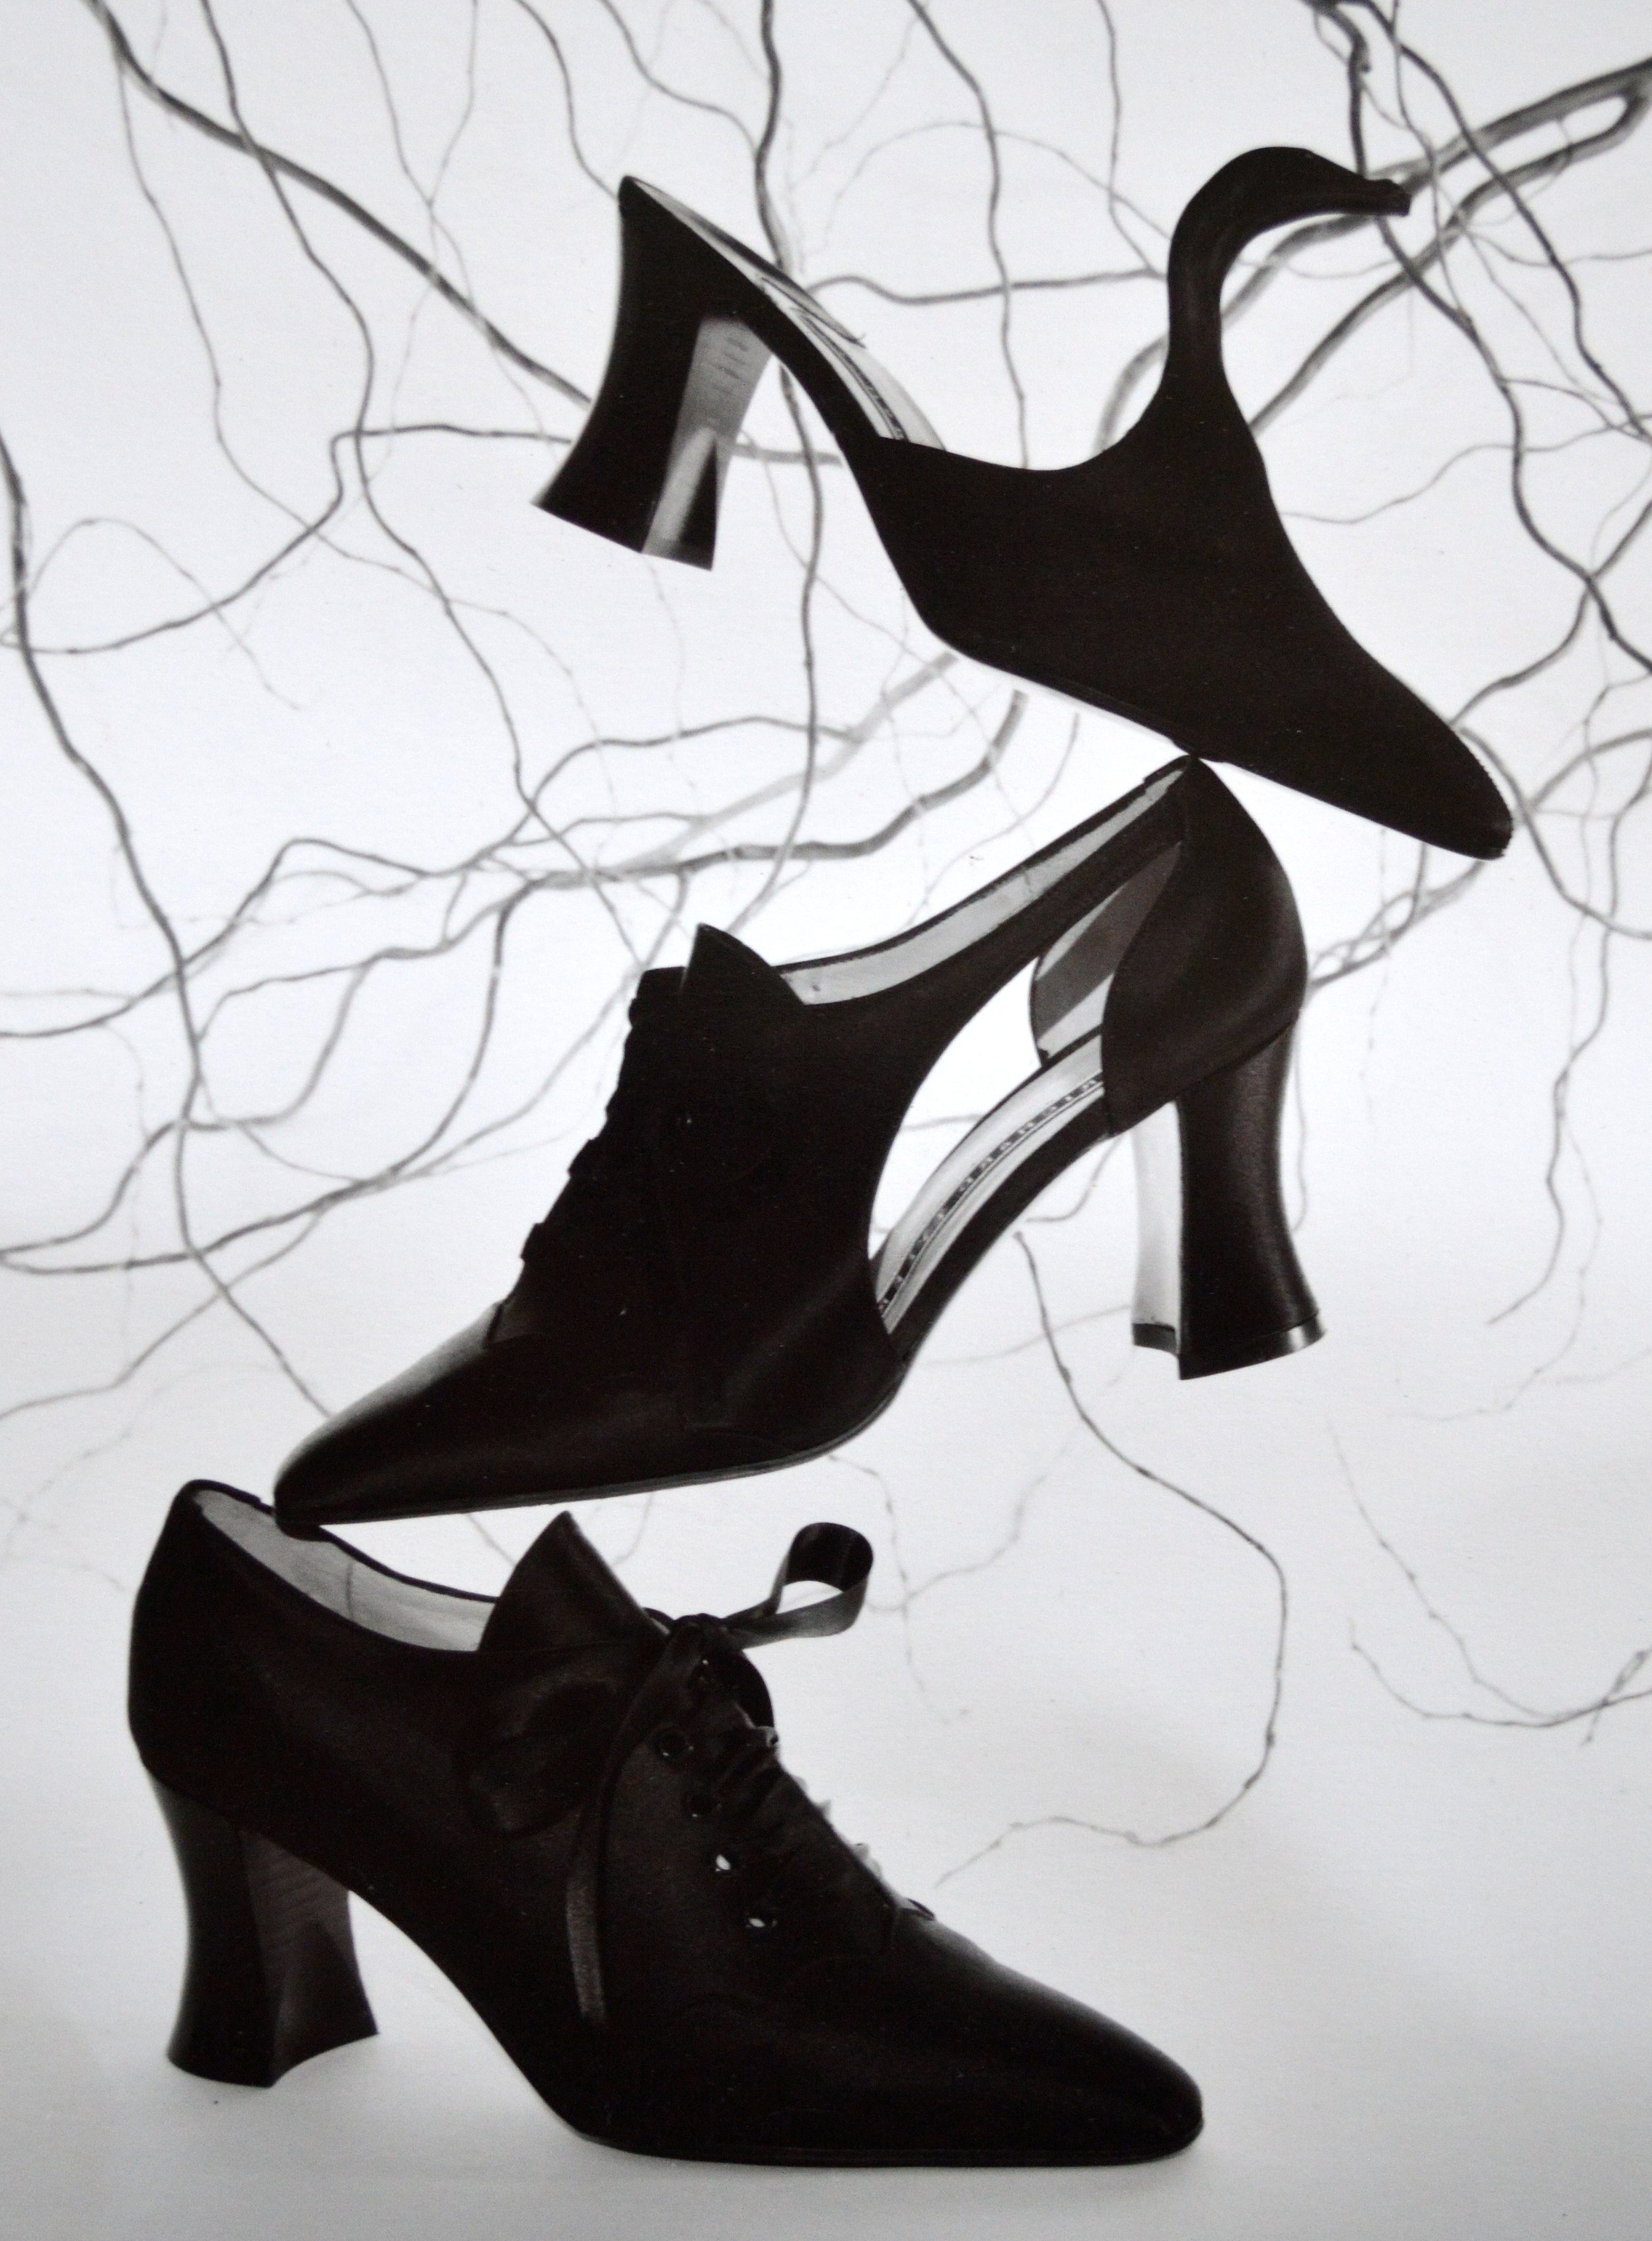 BLCK AND WHITE - MS SHOES.jpg